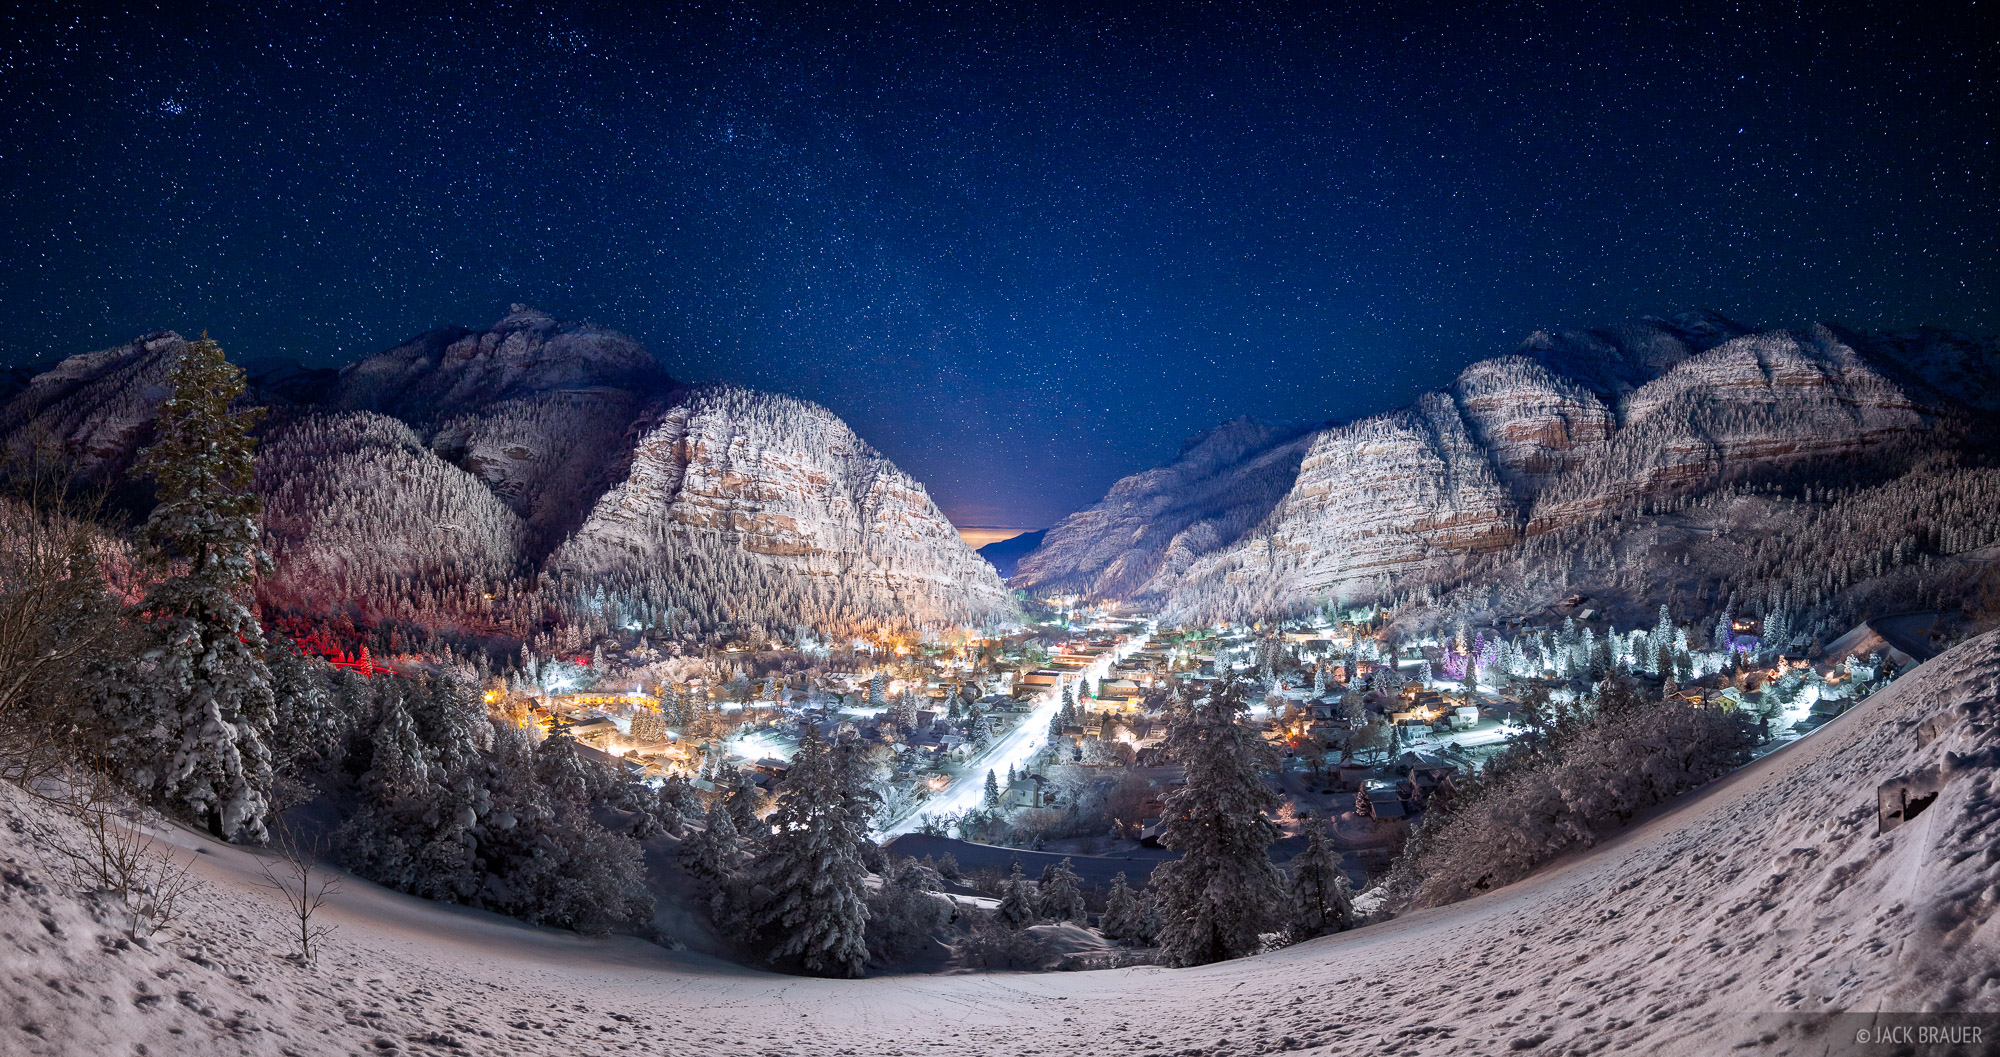 The lights of Ouray, Colorado illuminate the snow-smothered mountains of the Uncompahgre Gorge, as the stars and Milky Way shine...